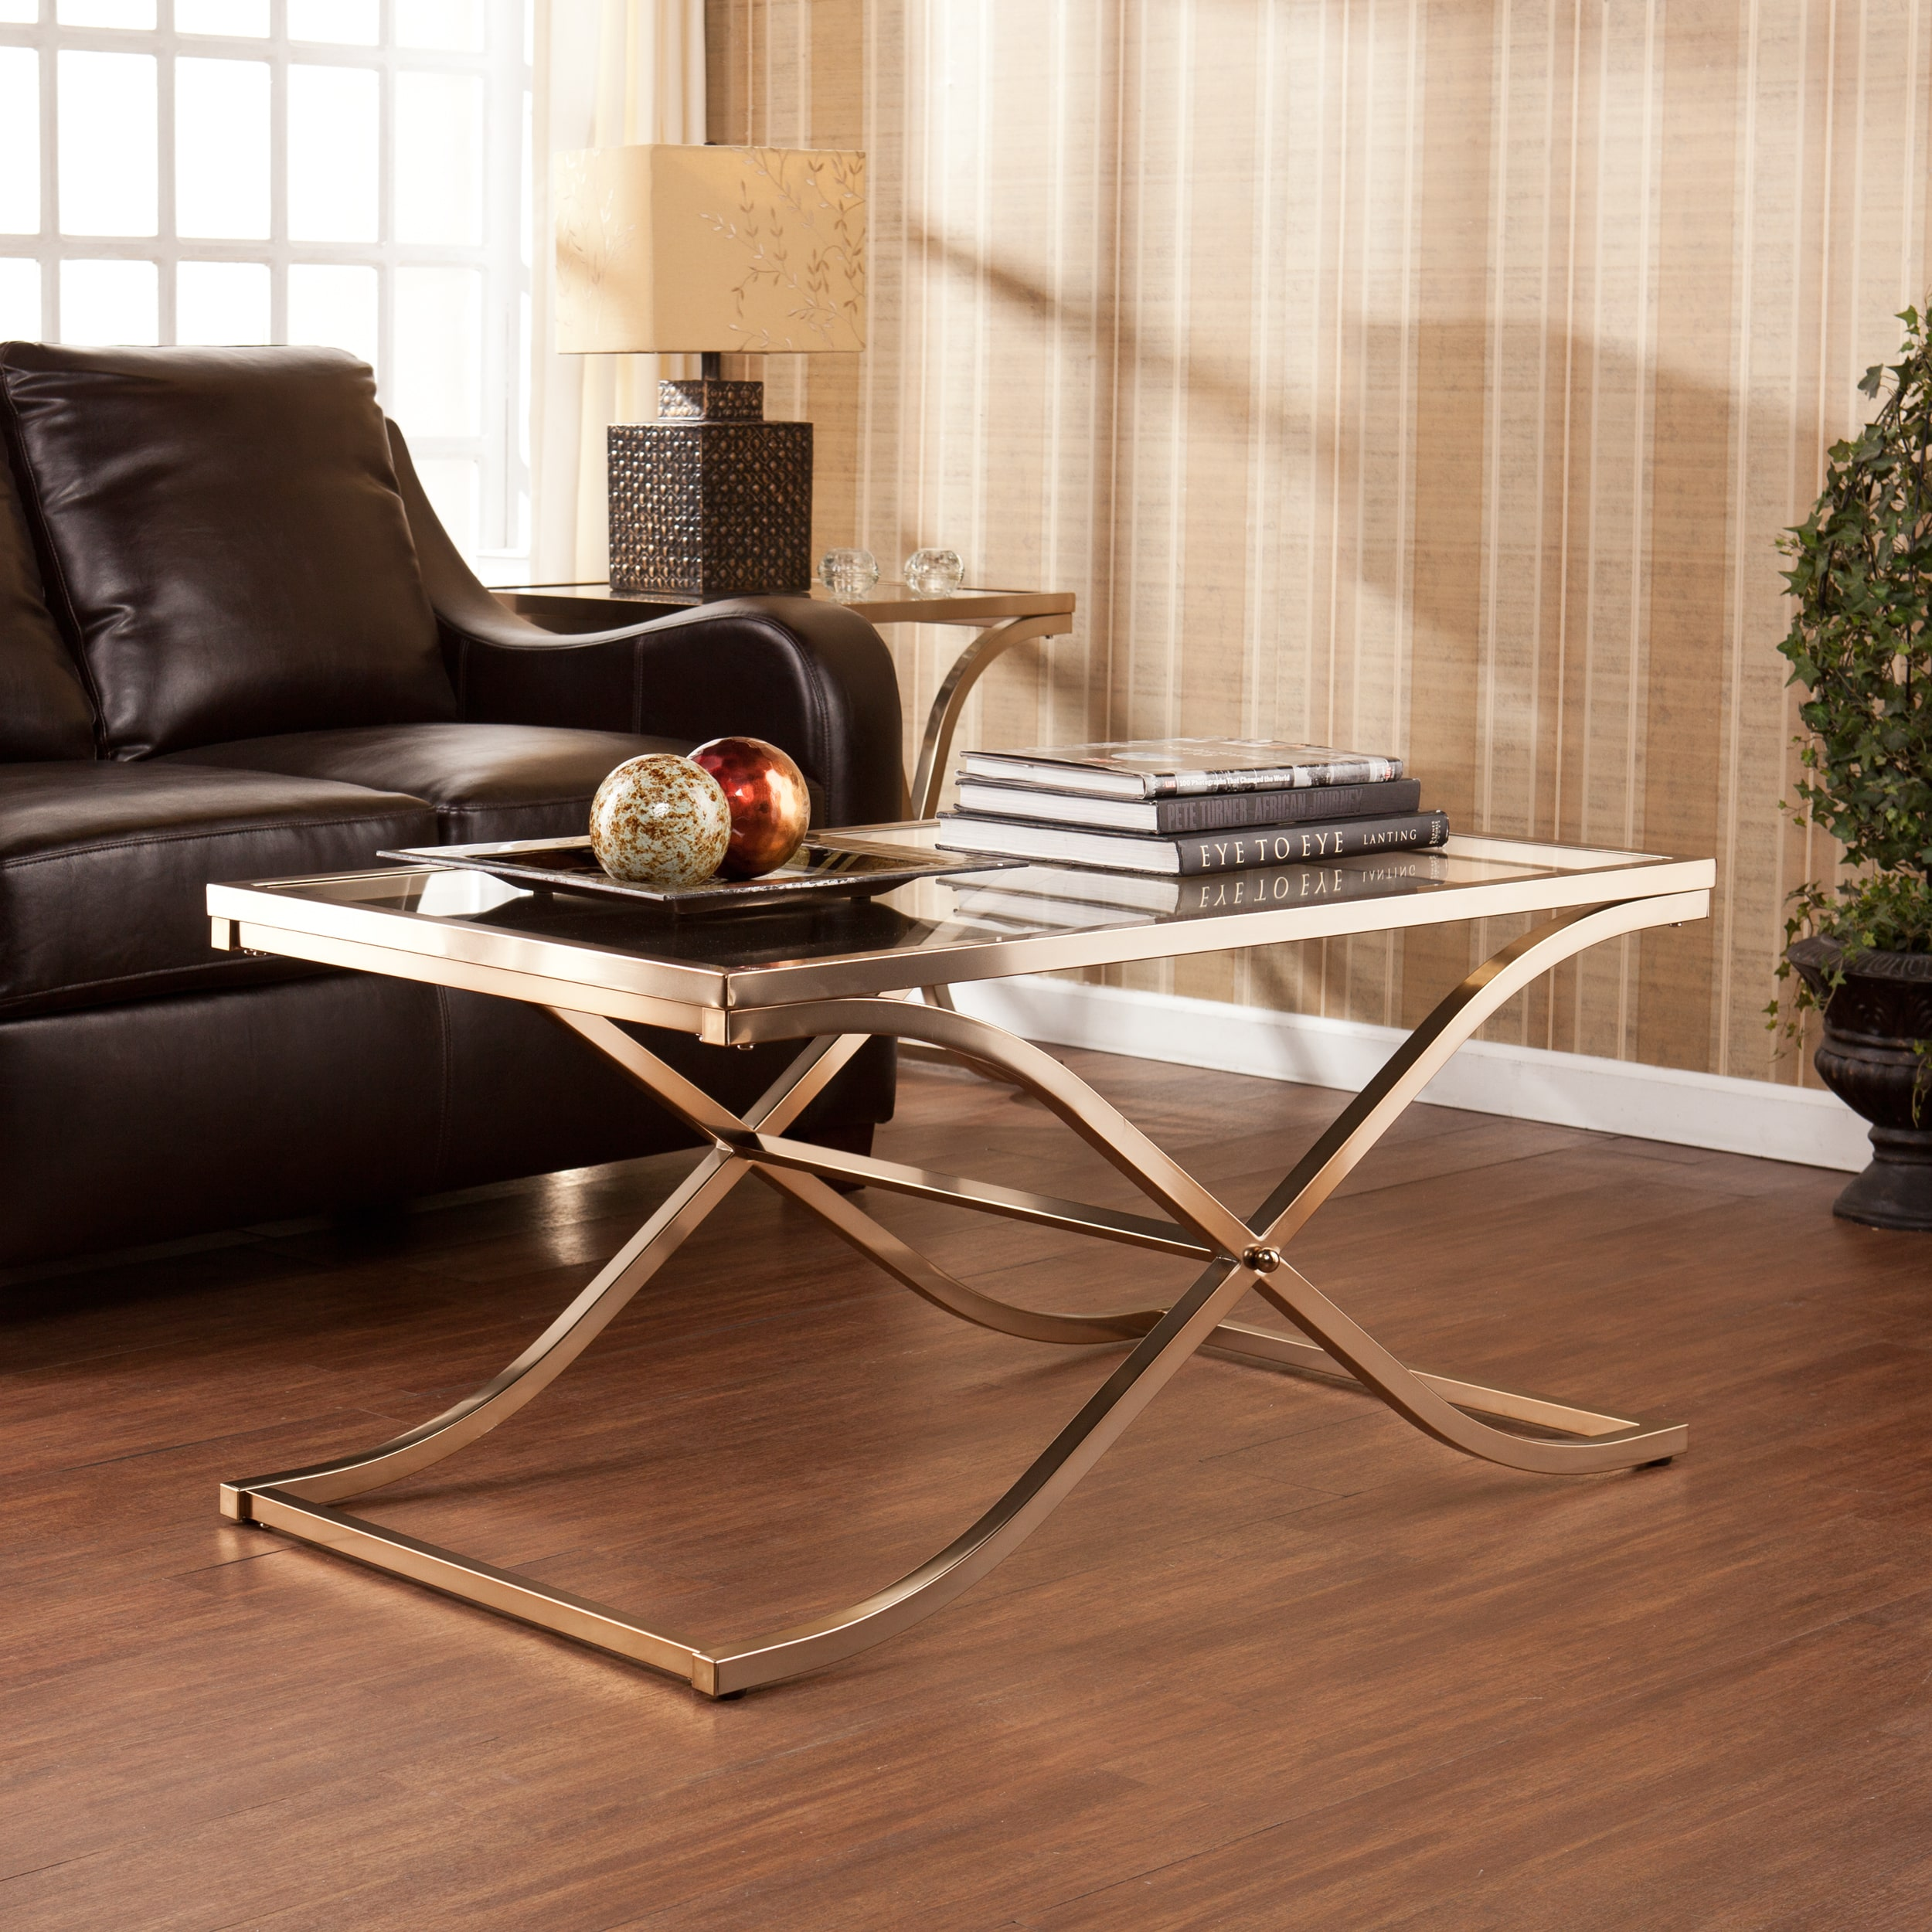 Harper Blvd Ambrosia Champagne Brass Cocktail Coffee Table